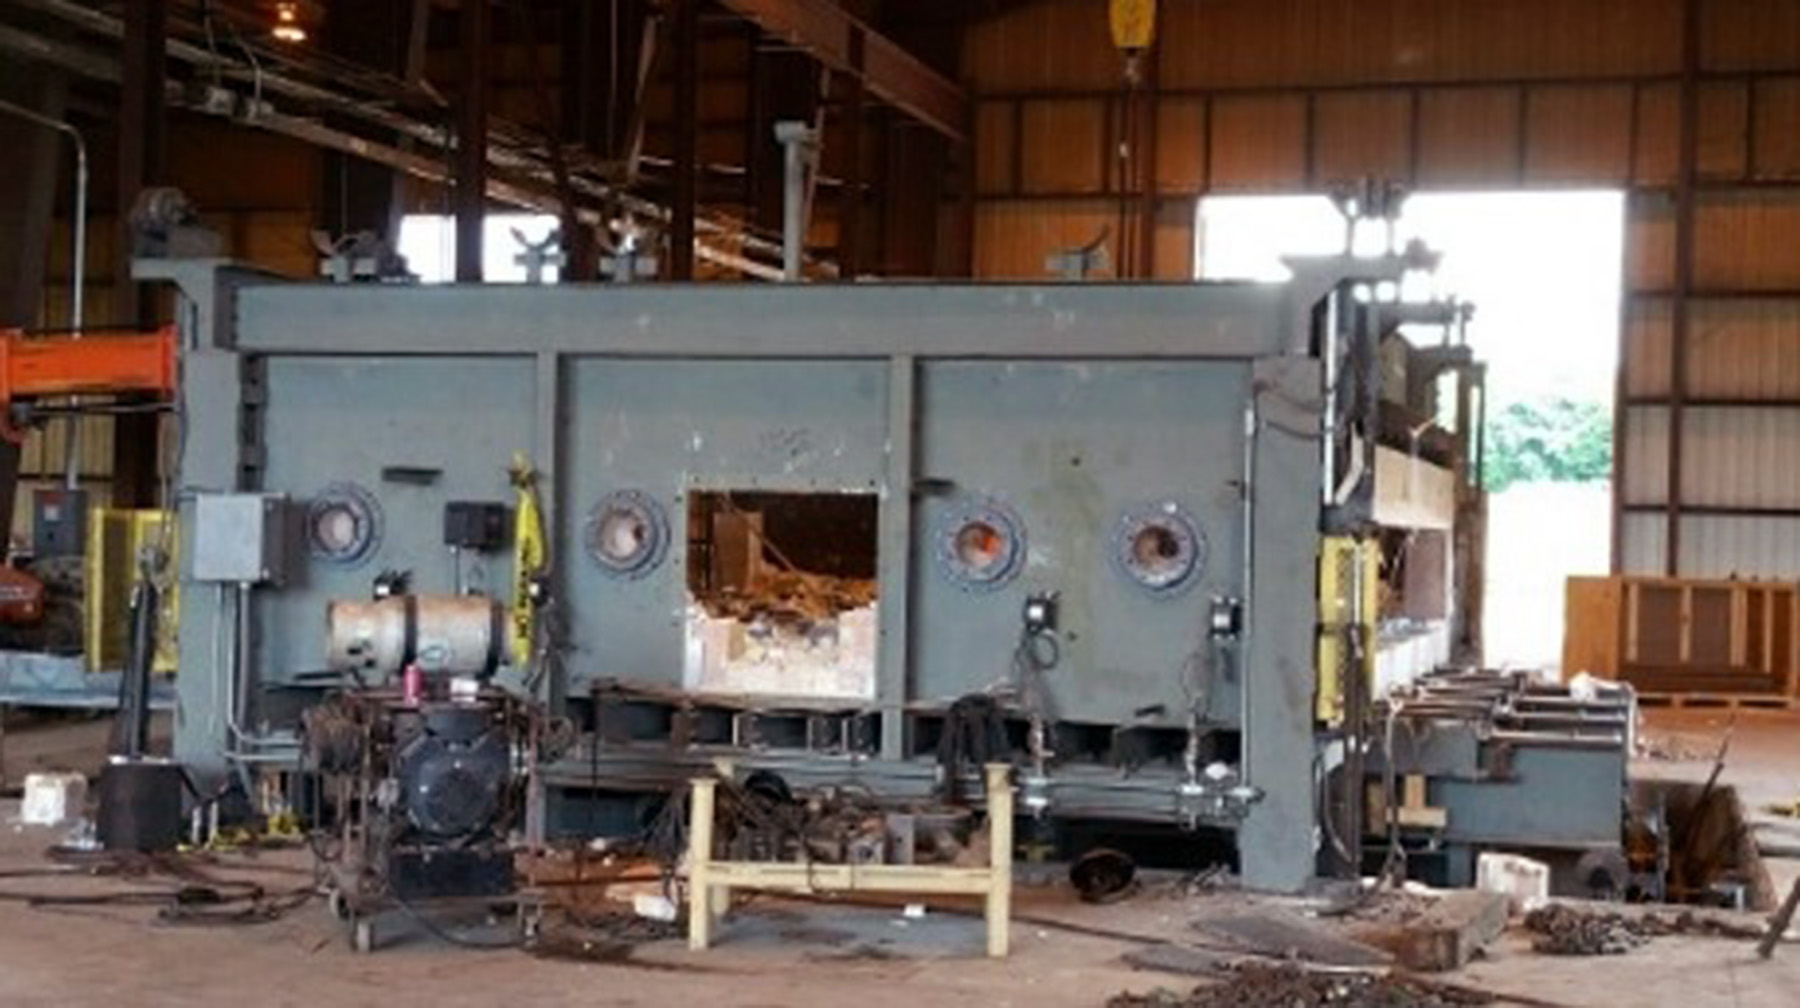 USED, 2000 DEG. F PLATE FURNACE WITH AUTOMATED WALKING BEAM PASS THROUGH SYSTEM (MFD. BY NORTH AMERICAN CONSTRUCTION SERVICES, LTD - NOW FIVES GROUP)